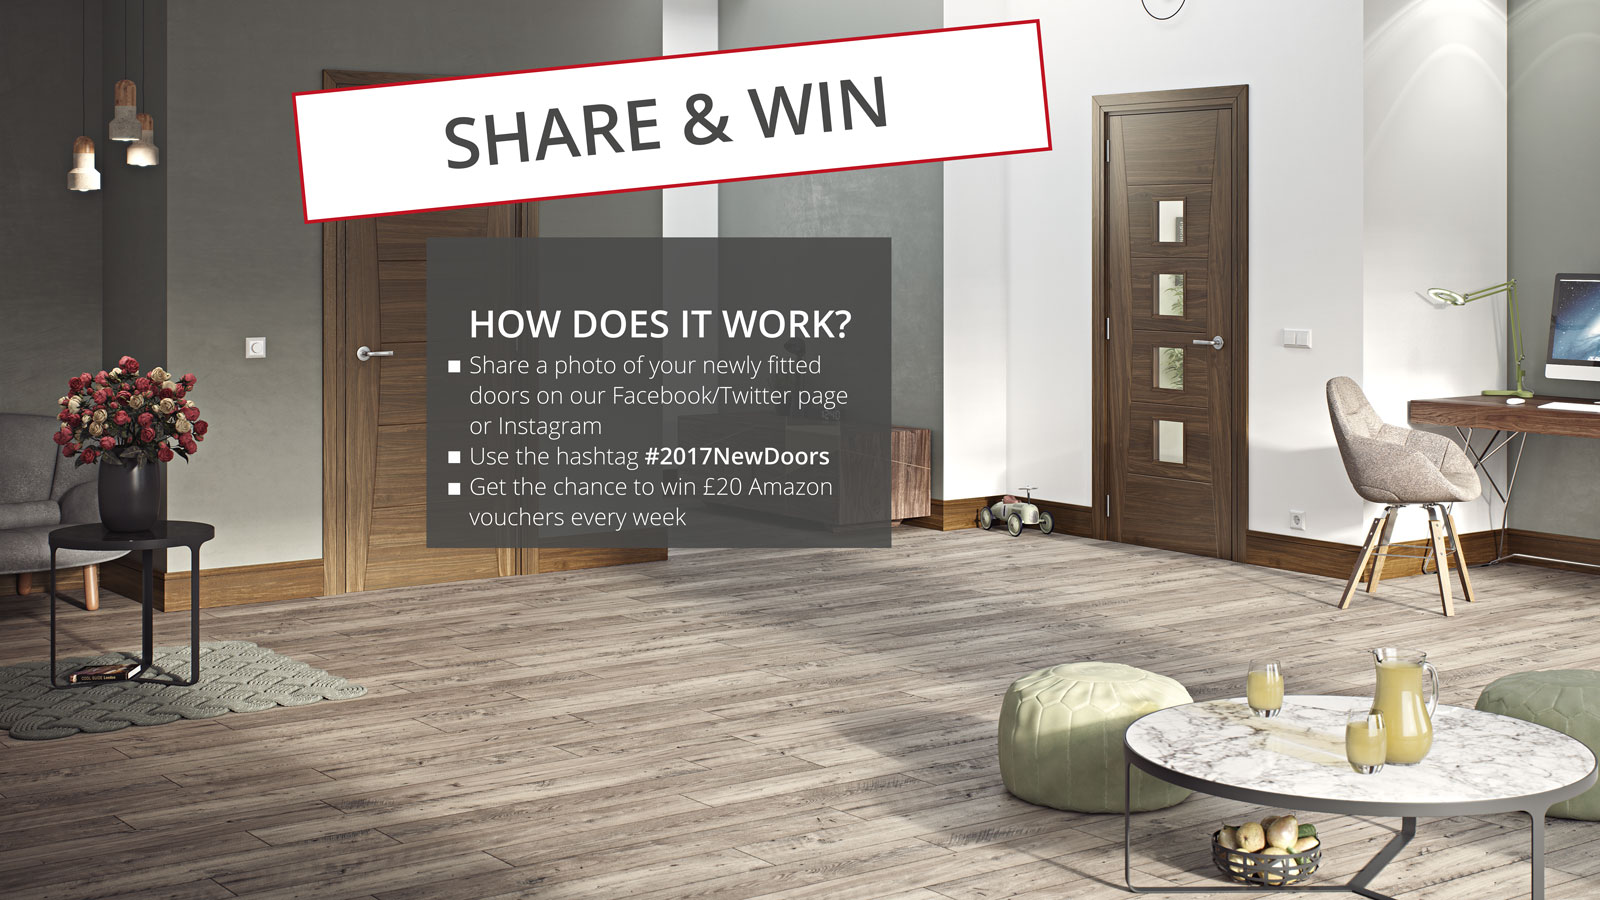 Share & Win with the #2017NewDoors hashtag!